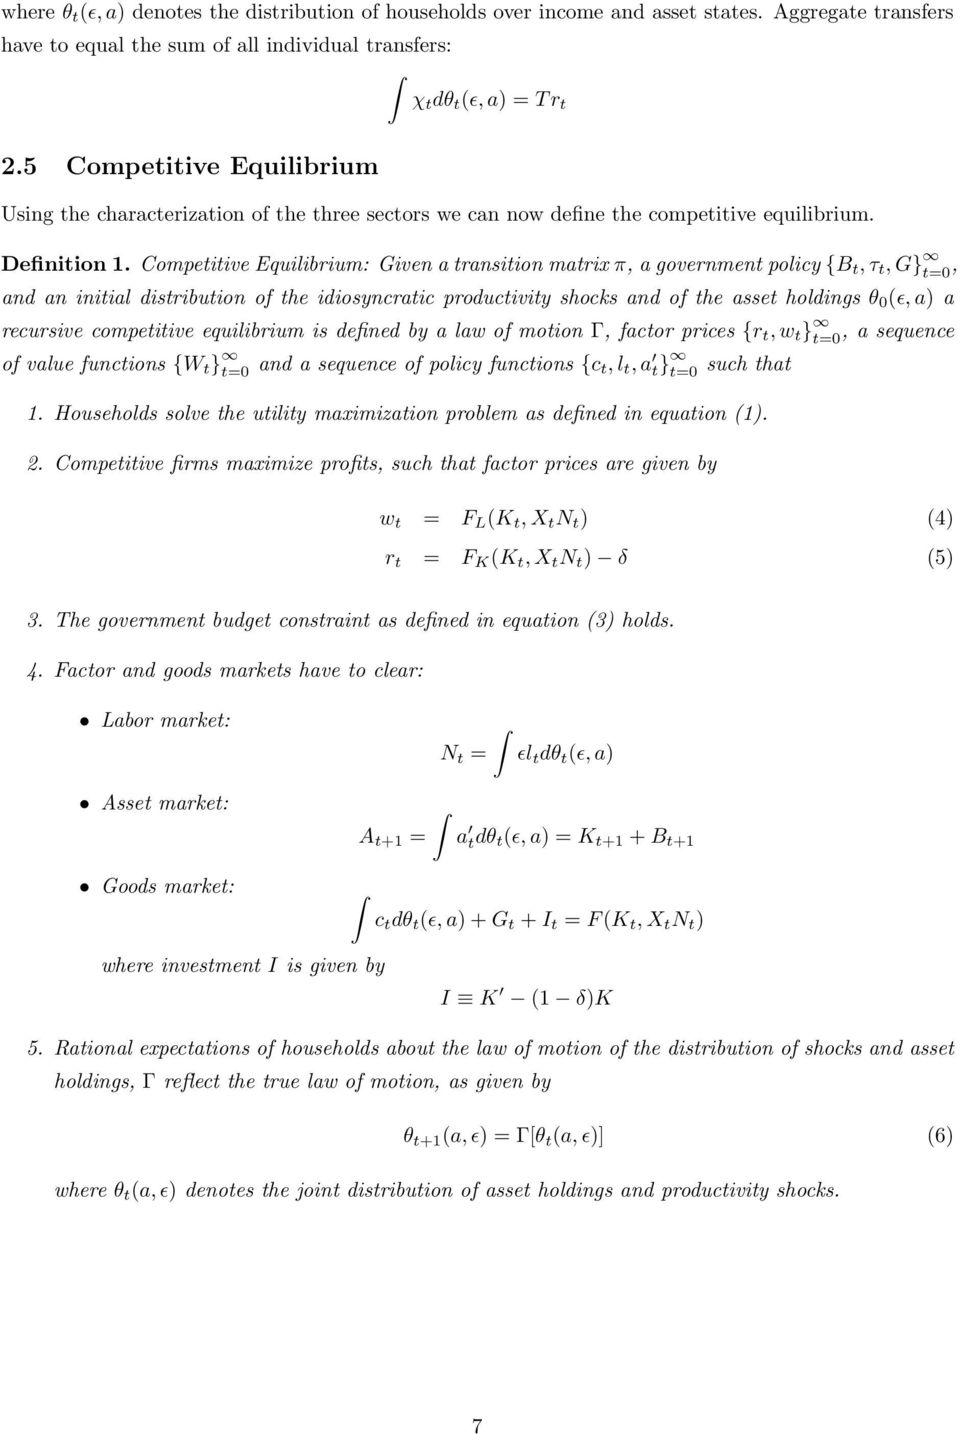 Competitive Equilibrium: Given a transition matrix π, a government policy {B t, τ t, G} t=0, and an initial distribution of the idiosyncratic productivity shocks and of the asset holdings θ 0 (ɛ, a)